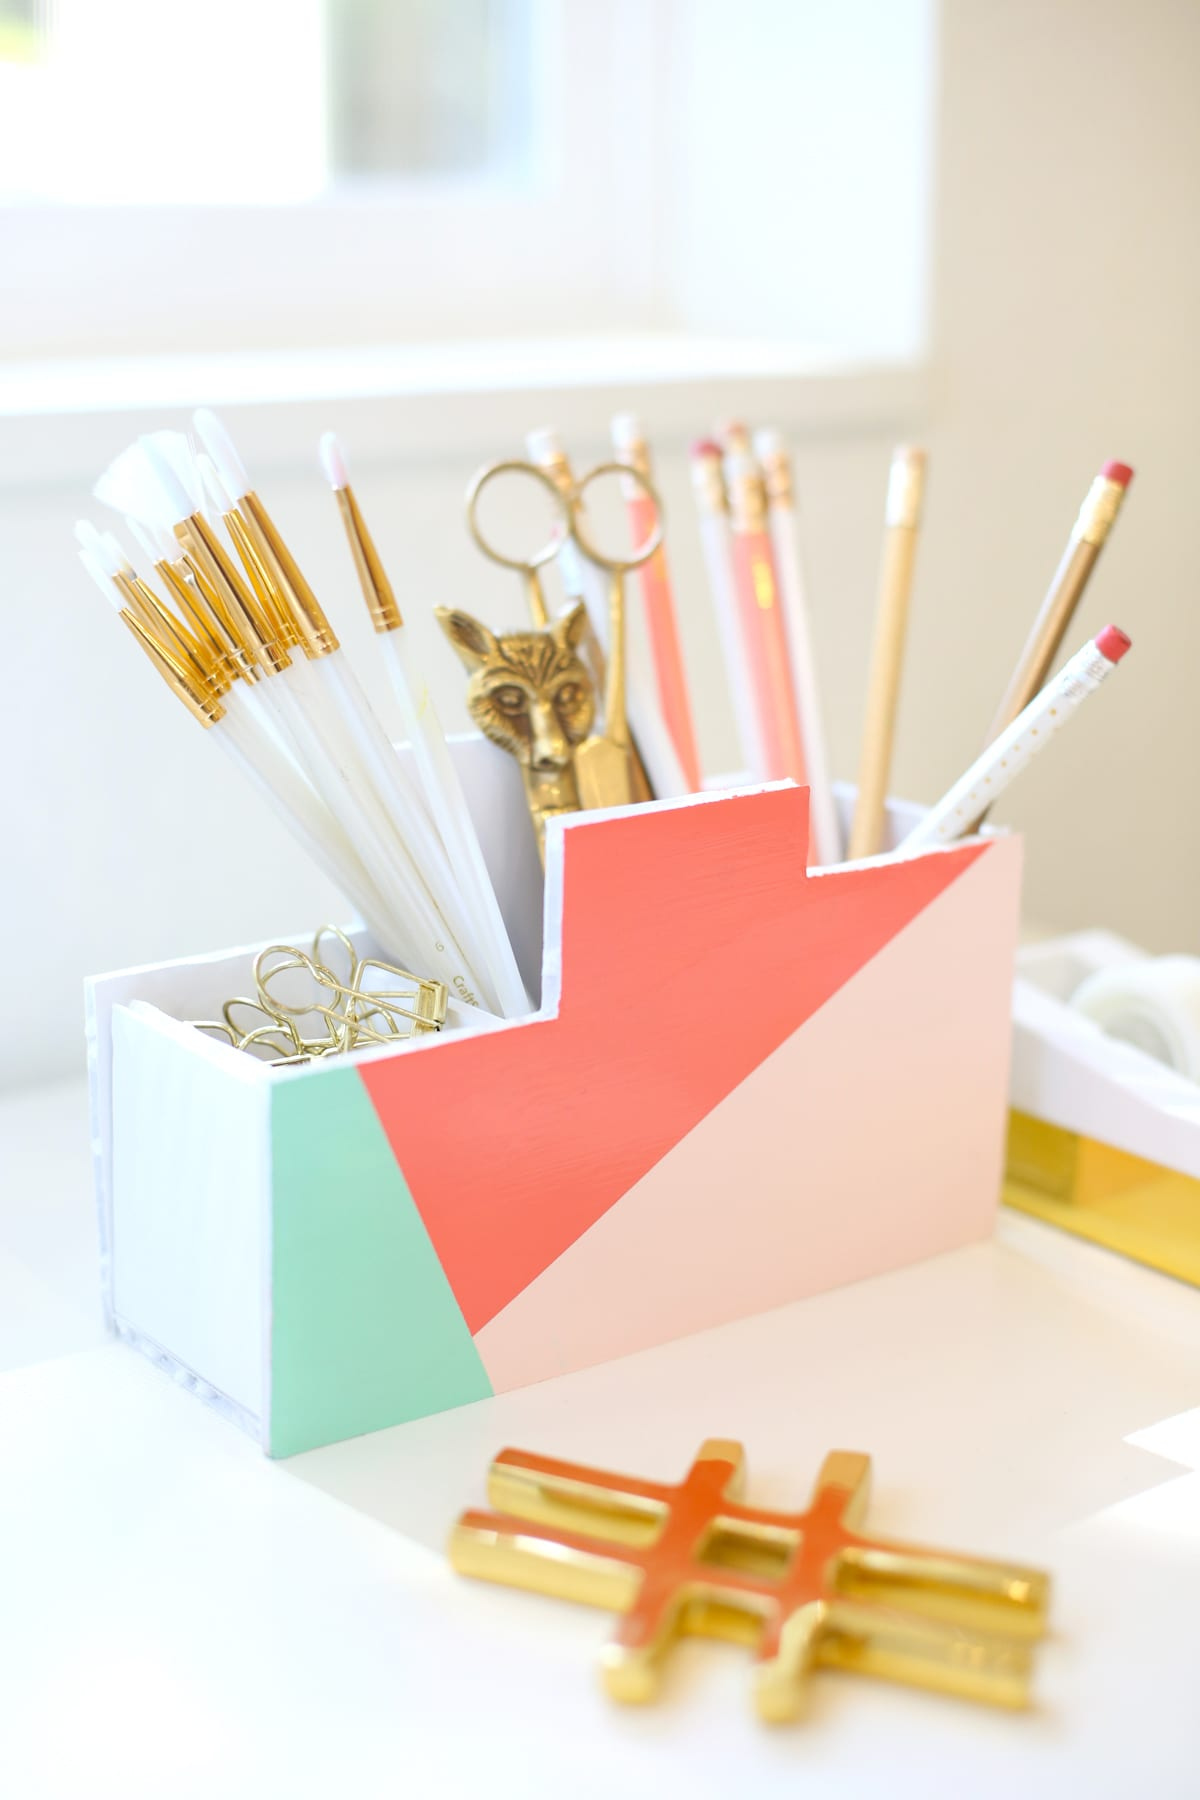 Diy Desk Organizer Diy Desktop Organizer Images Reverse Search